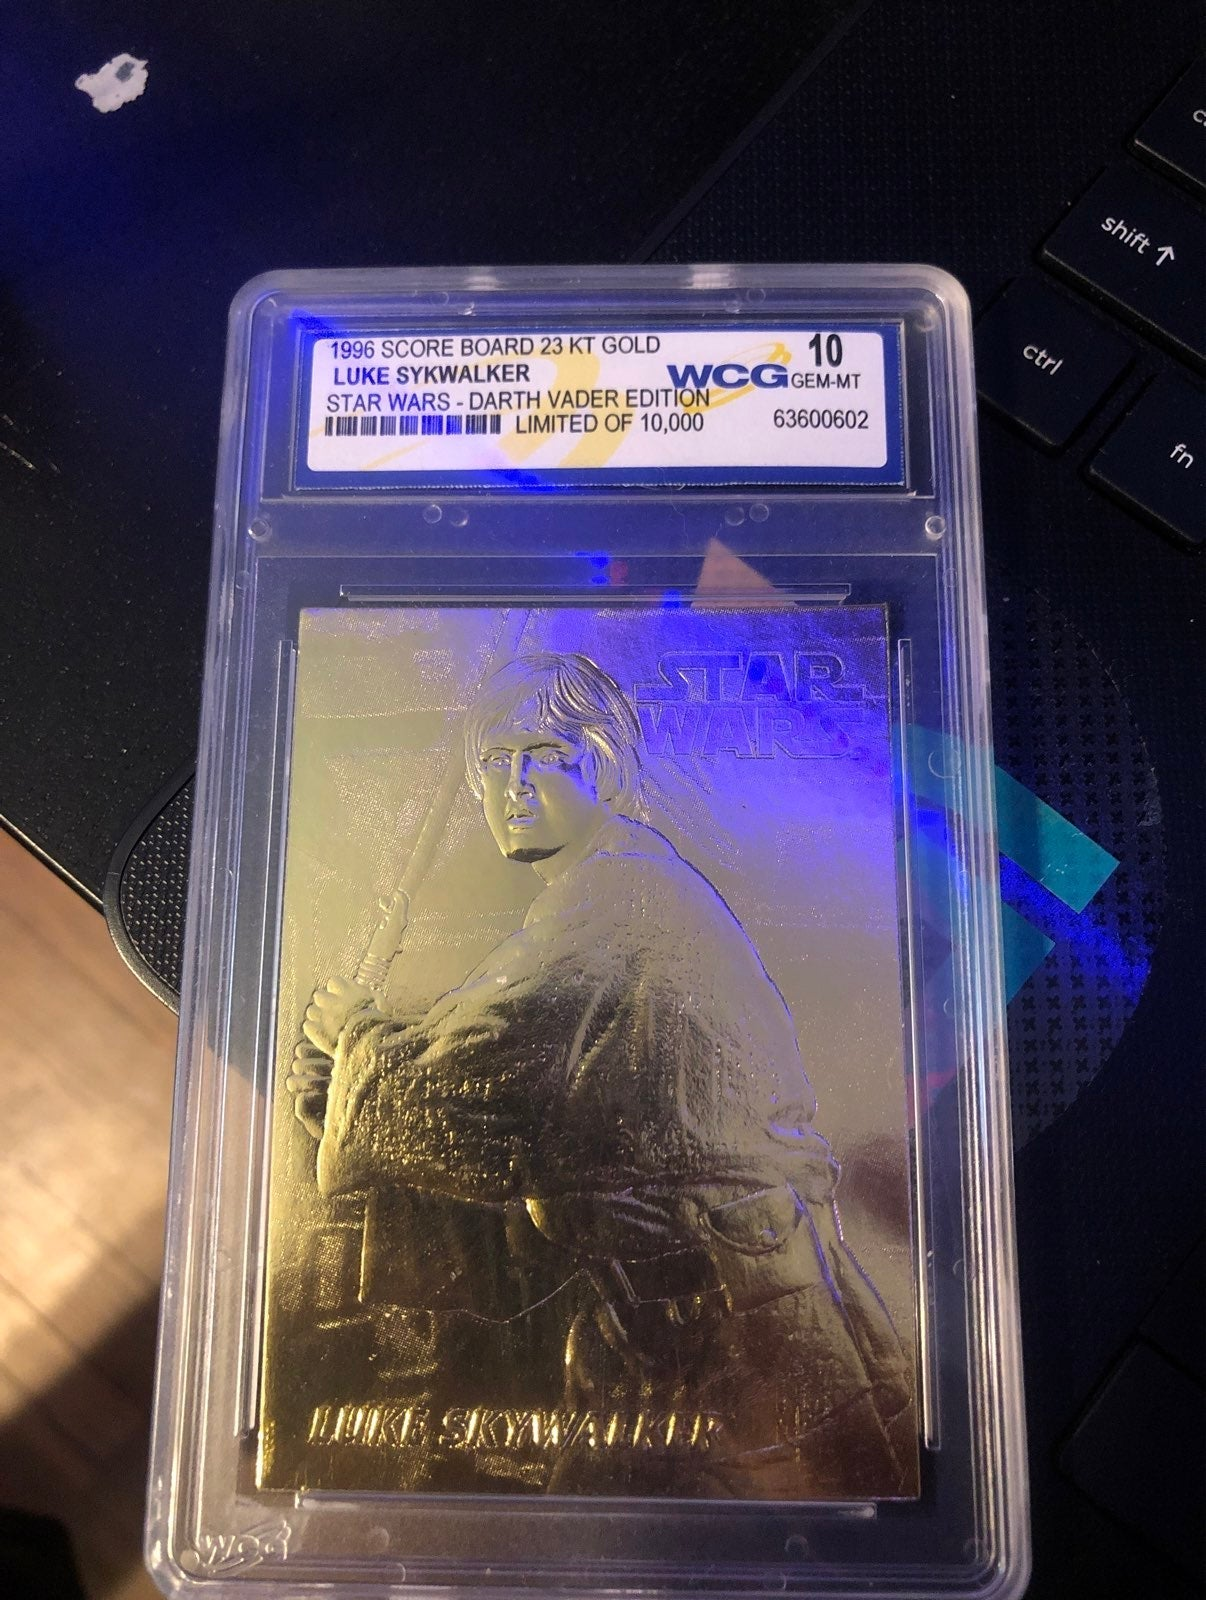 Luke Skywalker Limited edition 23KT GOLD